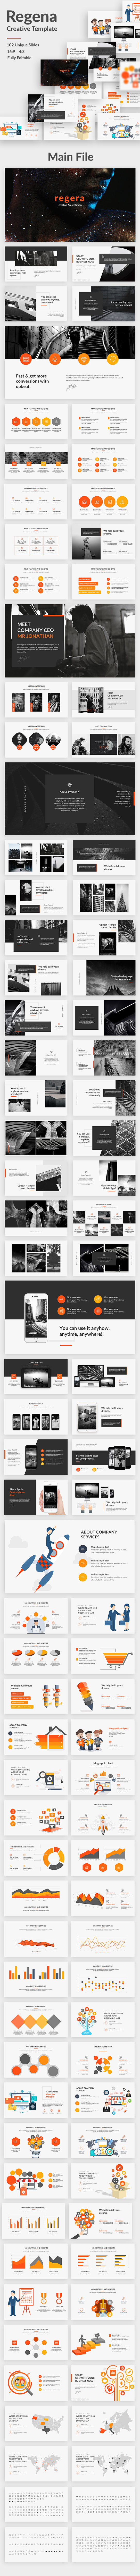 GraphicRiver Regena Creative Powerpoint Template 20351541